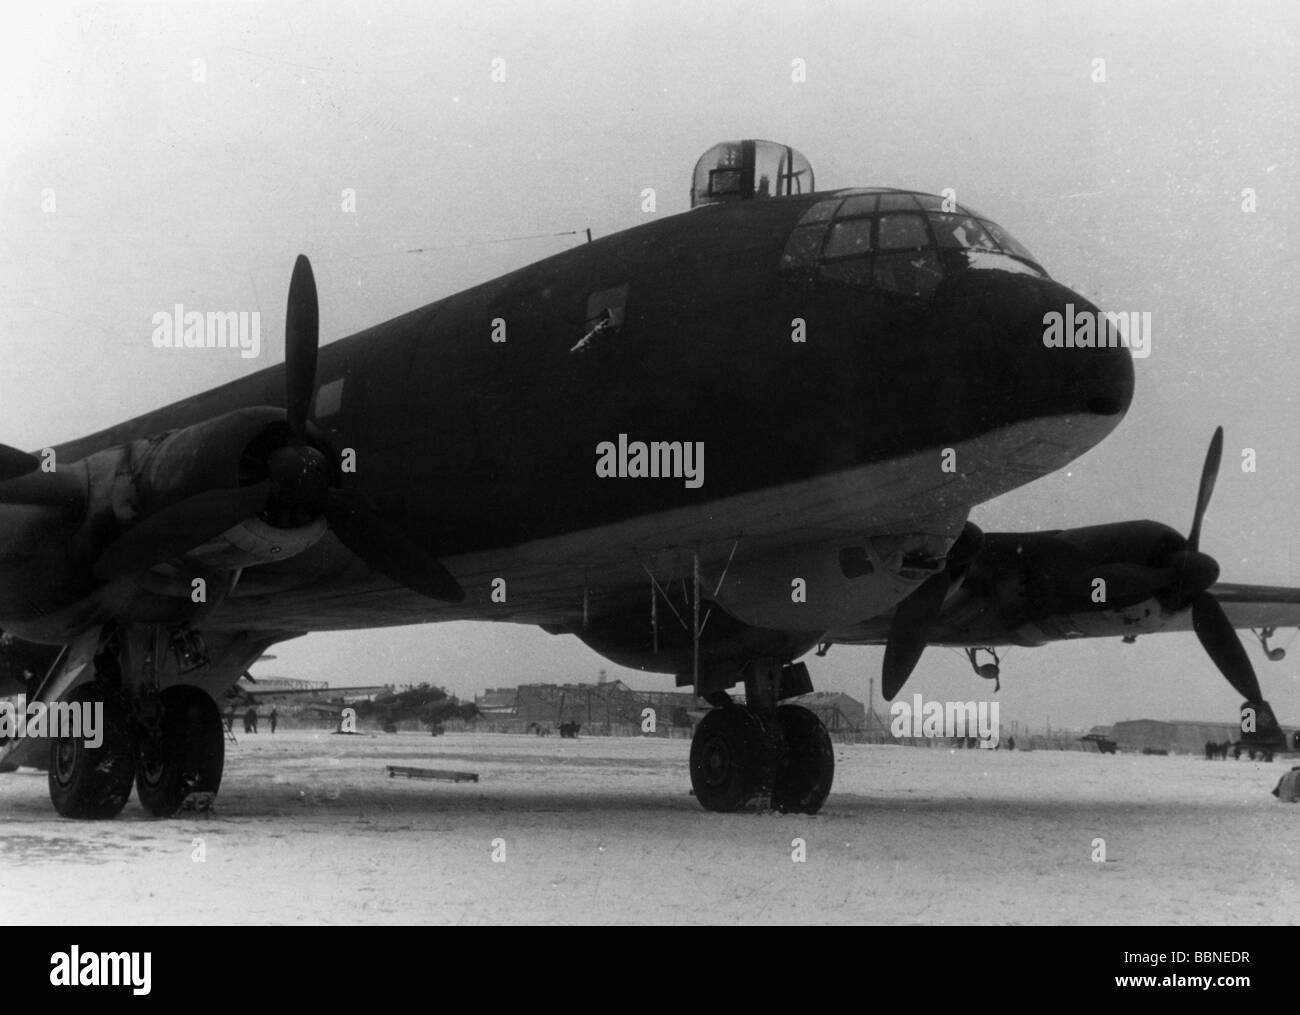 events, Second World War / WWII, aerial warfare, aircraft